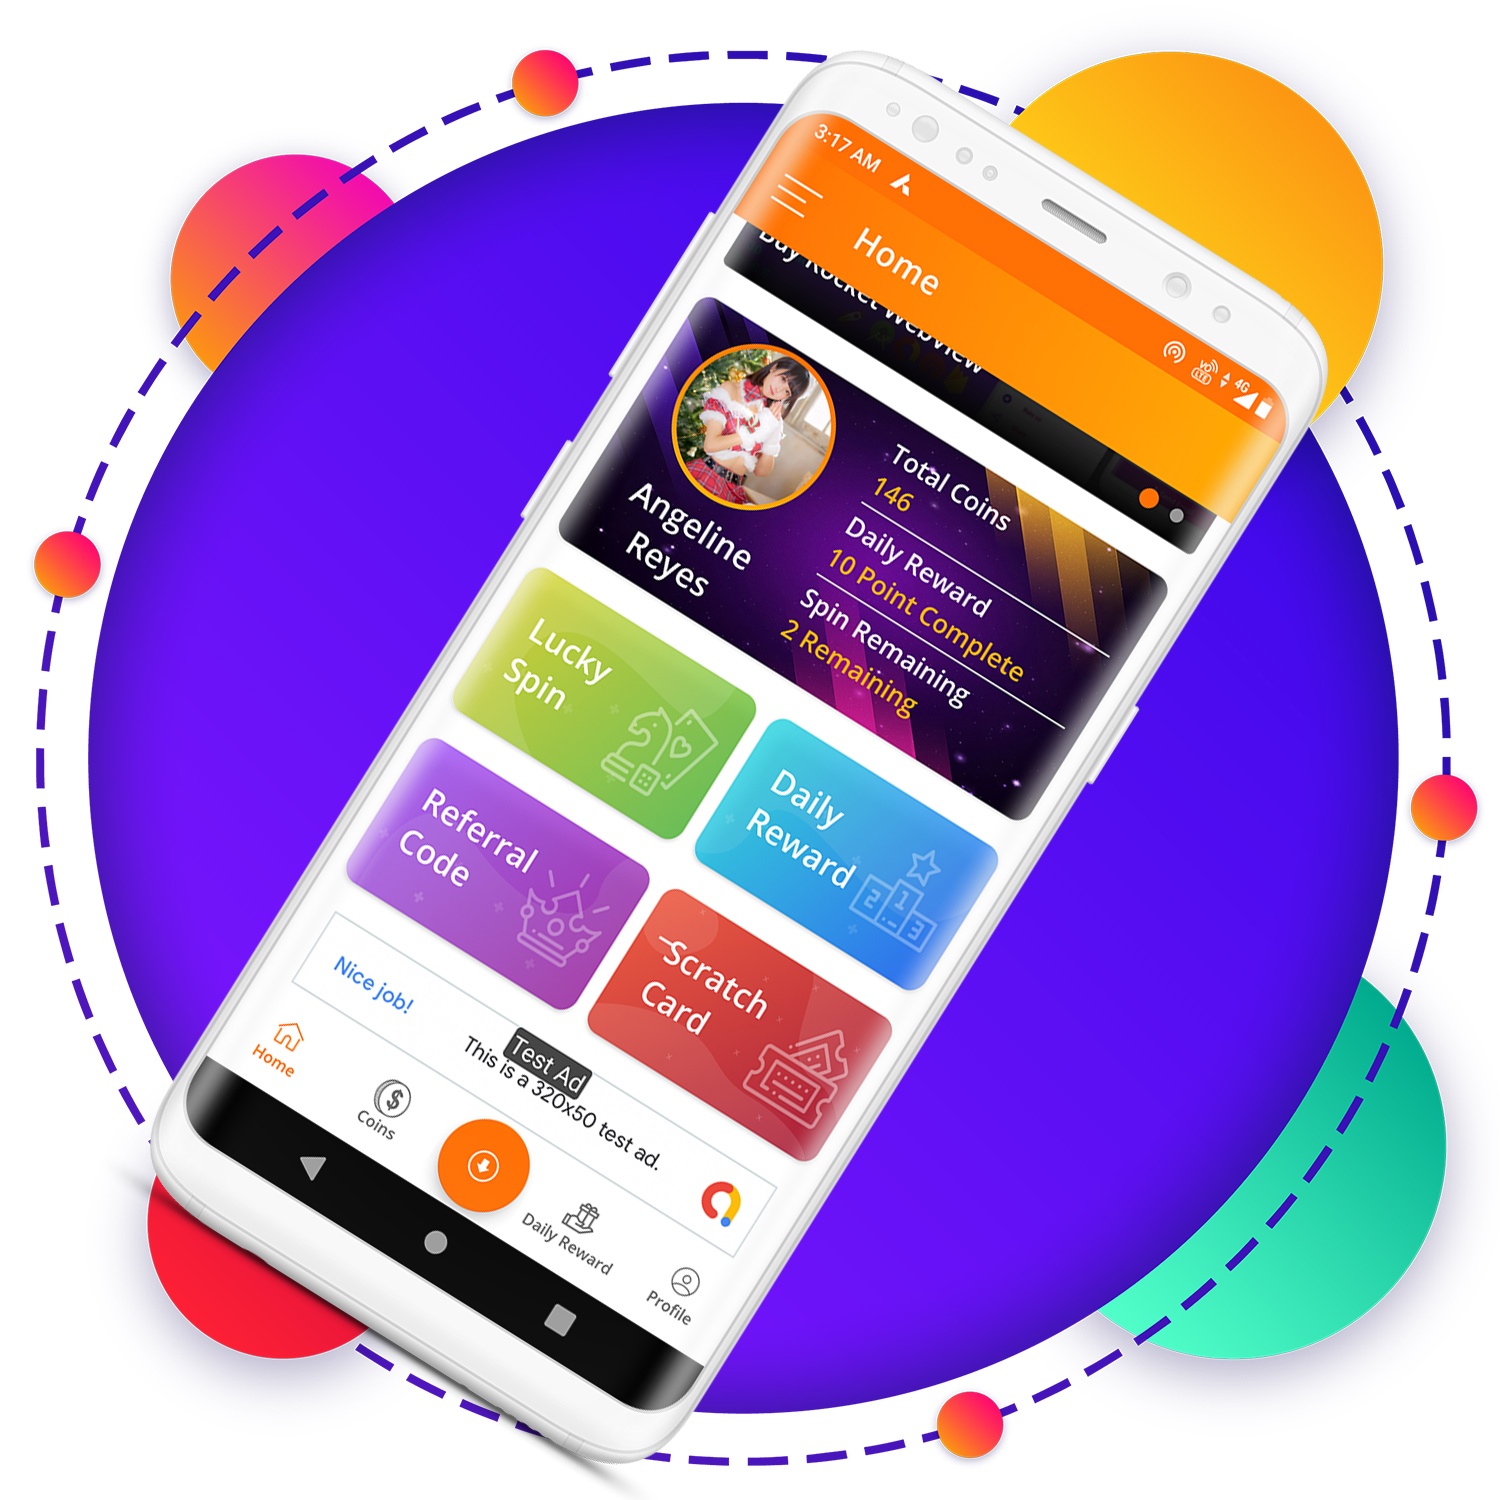 QuickCash All In One Money Earning Android App + Games + WhatsApp Tools + Earning System Admin Panel - 8